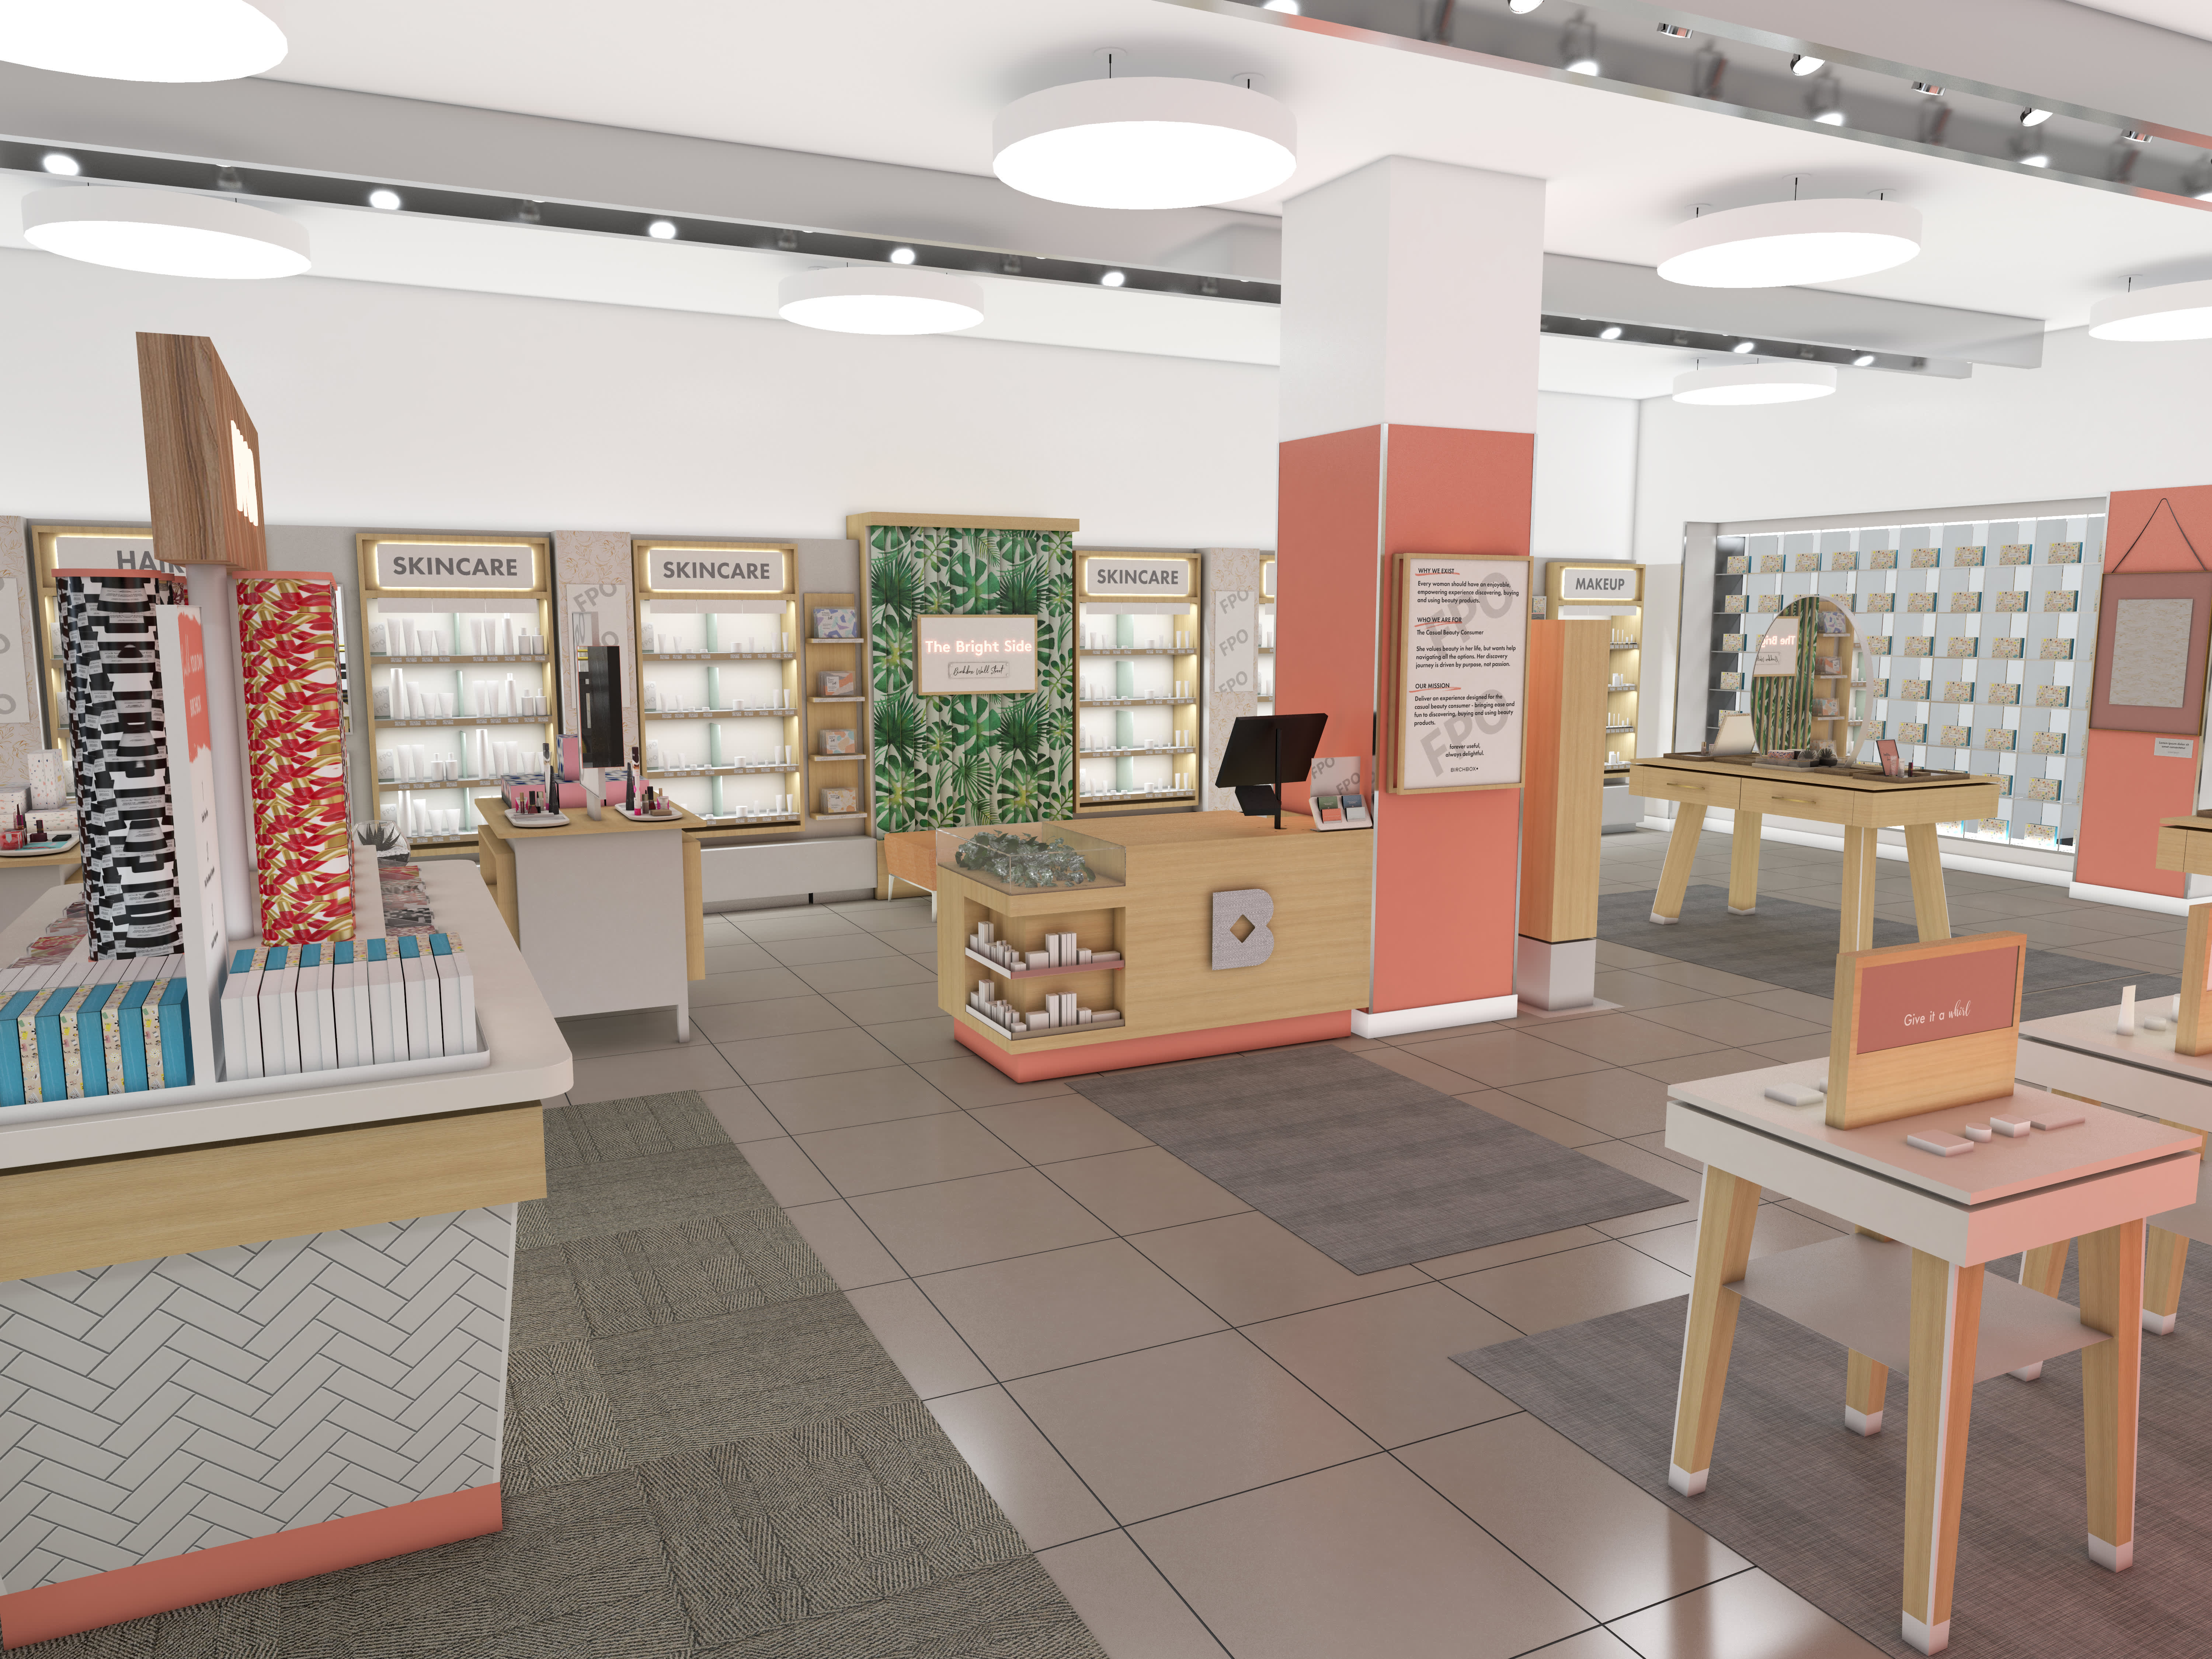 Walgreens Takes Minority Stake In Deal With Beauty Company Birchbox